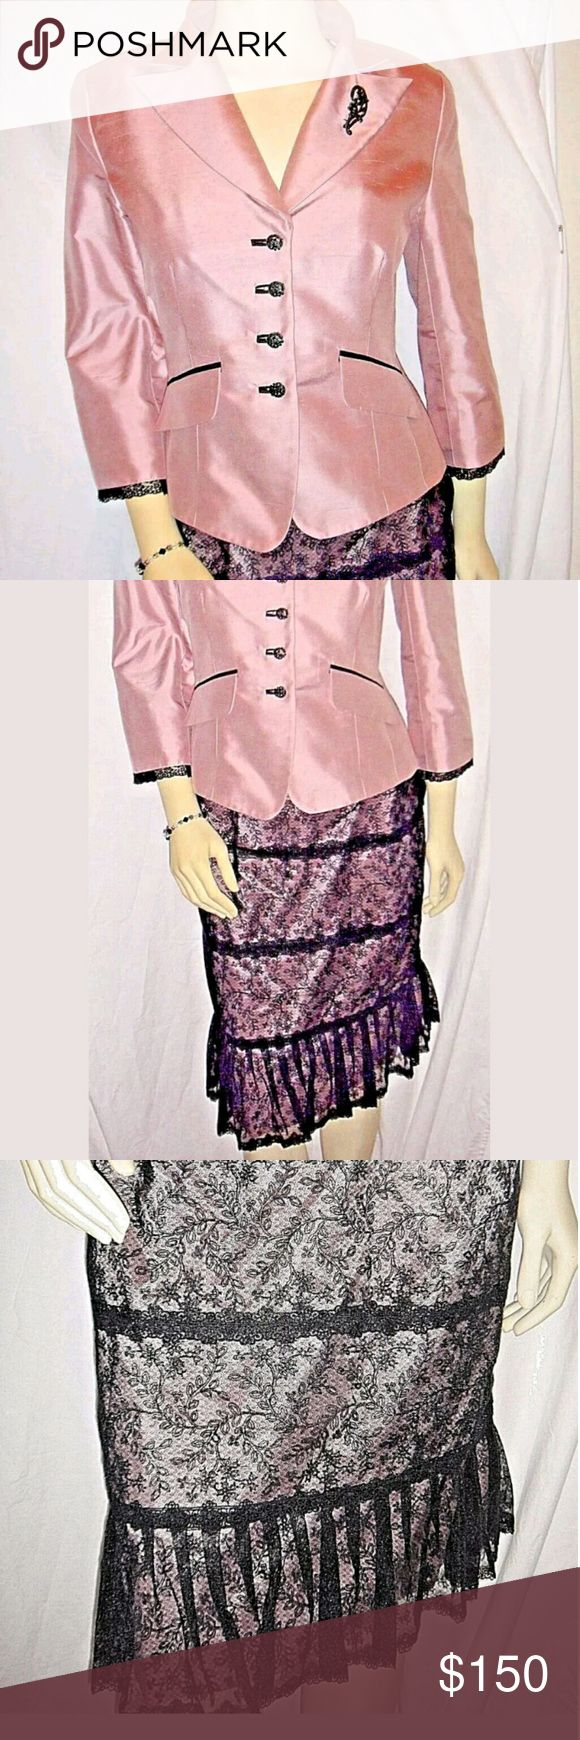 Kay Unger suit from Saks size 6 Kay Unger New York  PRETTY IN PINK!!!!!!!!!  Brand New And Authentic Silk Tafetta Suit    This is a glamorous Kay Unger New York suit. The silk and lace combo is luxurious and so visually appealing. A pretty peplum waistpulls it all together.  Kay Unger Other